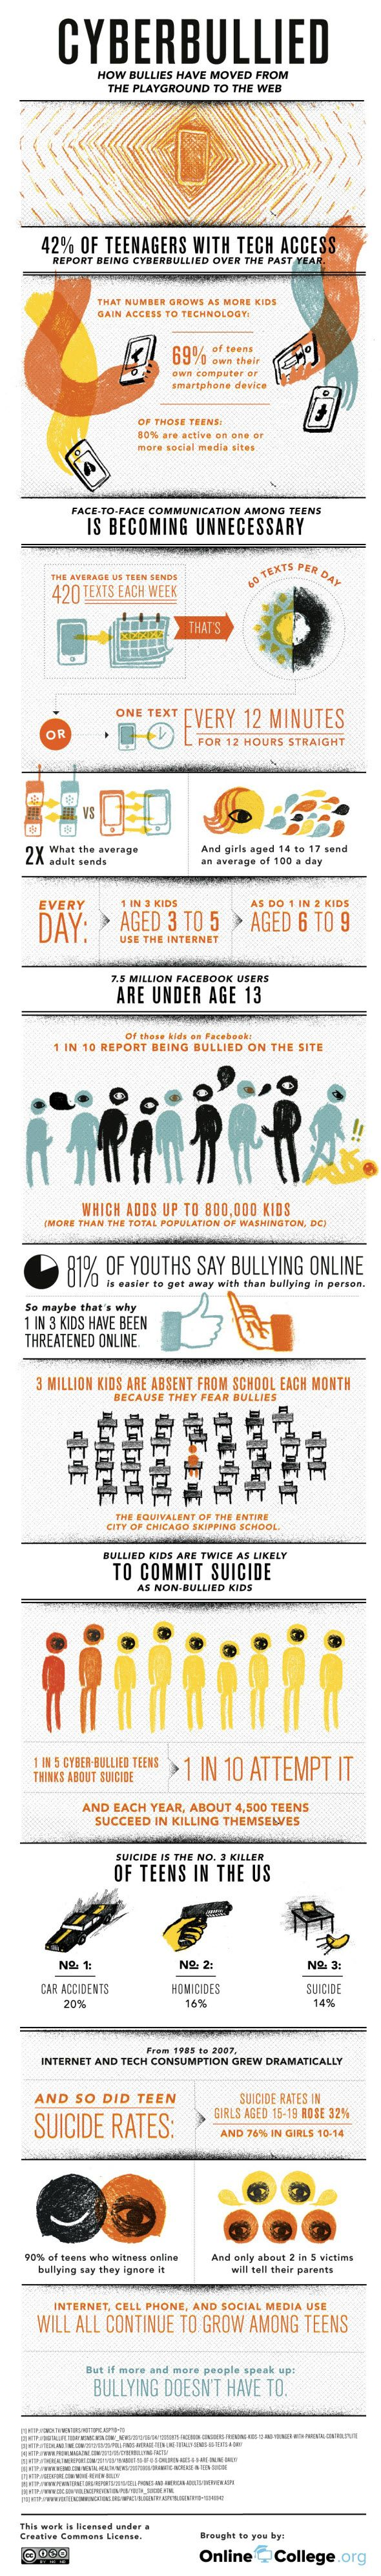 Cyberbullied - From The Playground To The Web [INFOGRAPHIC] cyberbullying small